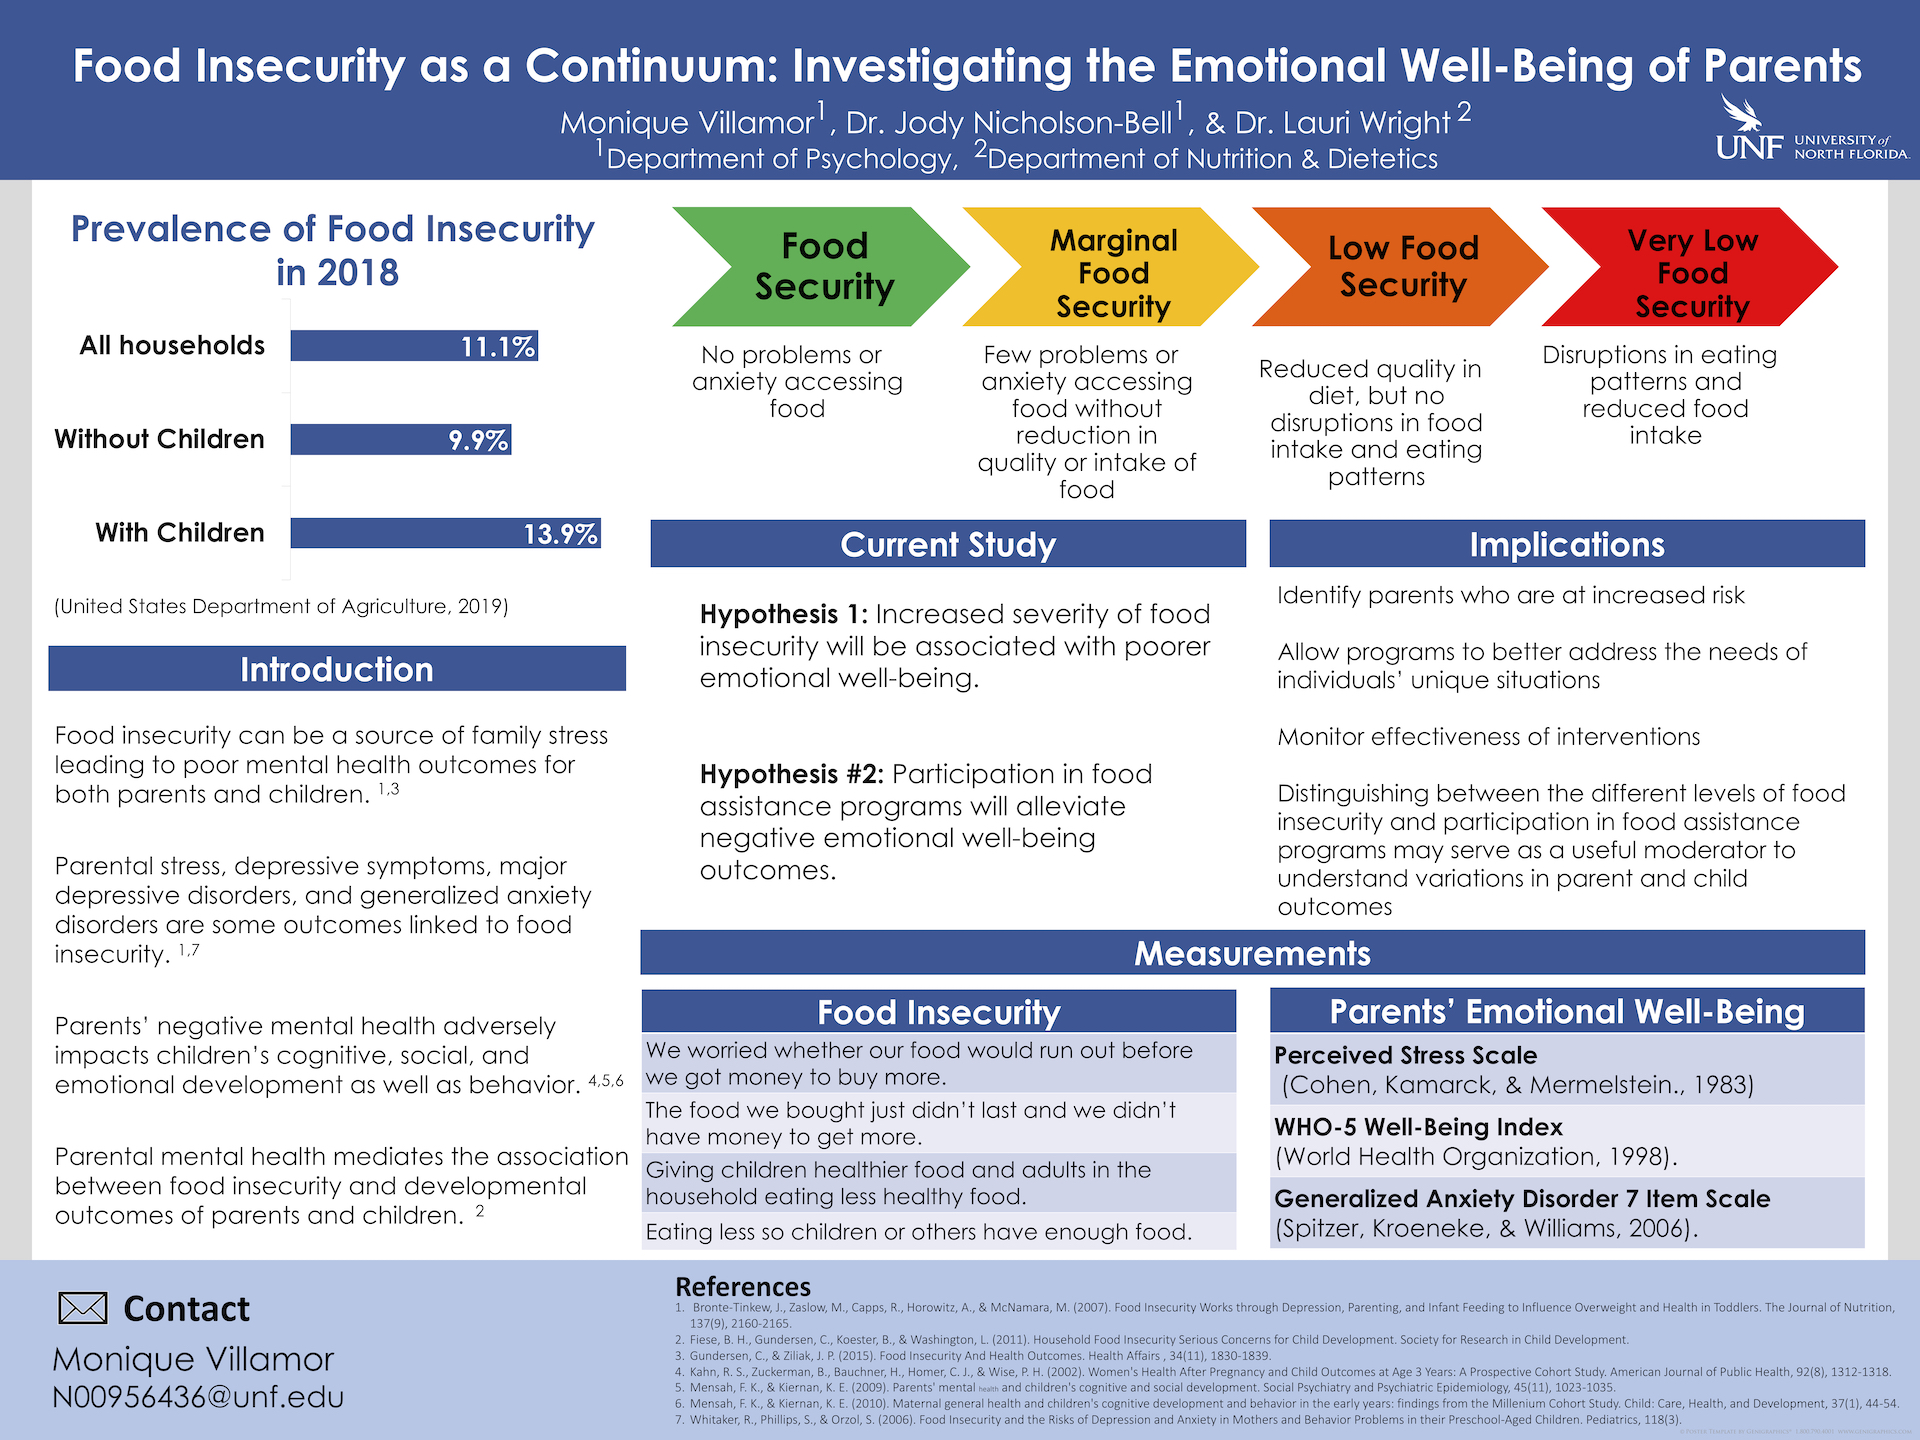 Food Insecurity as a Continuum: Investigating the Emotional Well-Being of Parents poster